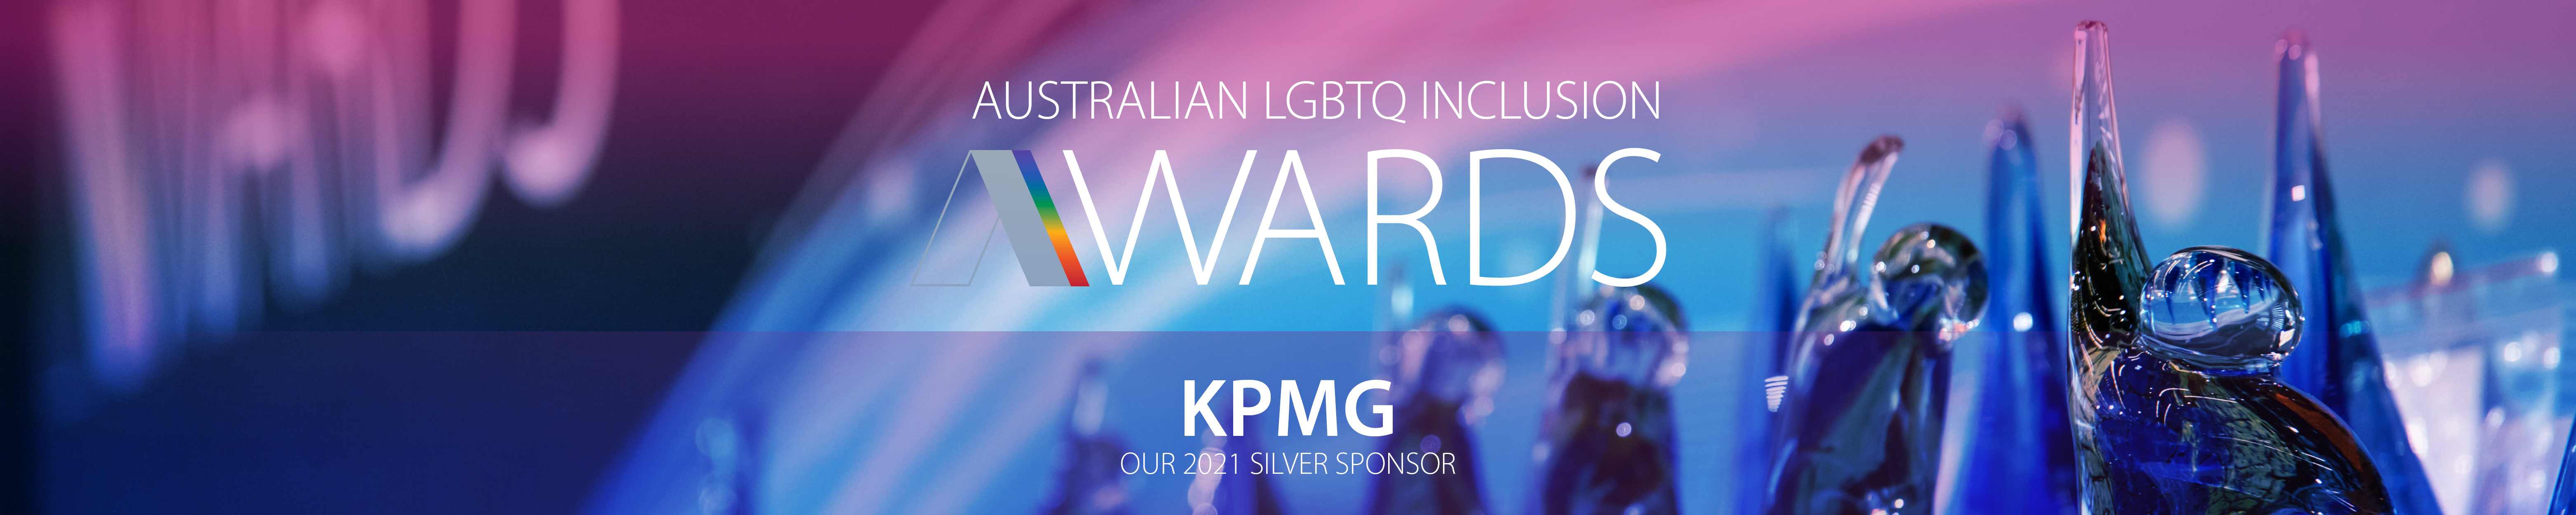 2021AWARDS_Sponsor_KPMG